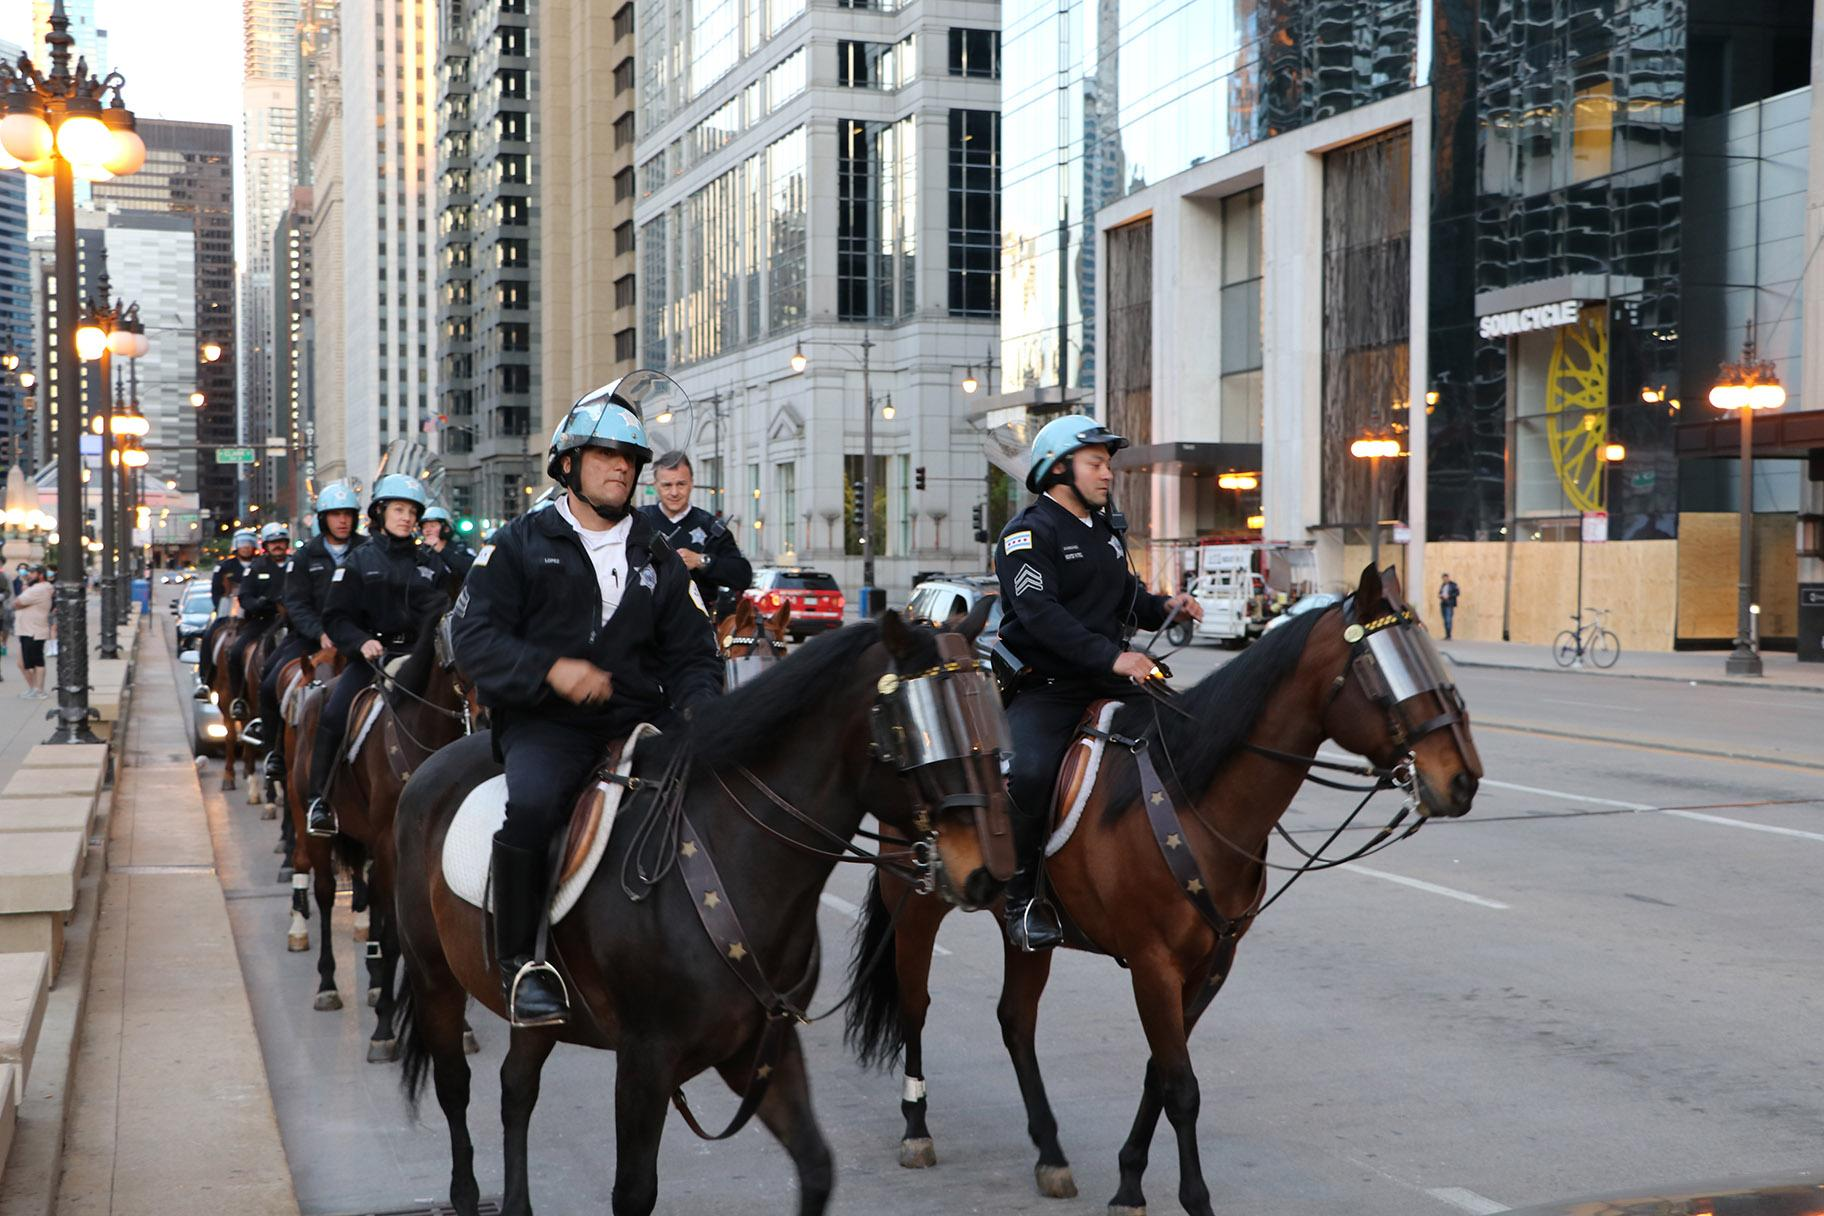 Police officers on horseback line up near the LaSalle Street bridge, the only visibly lowered bridge in the area. (Evan Garcia / WTTW News)